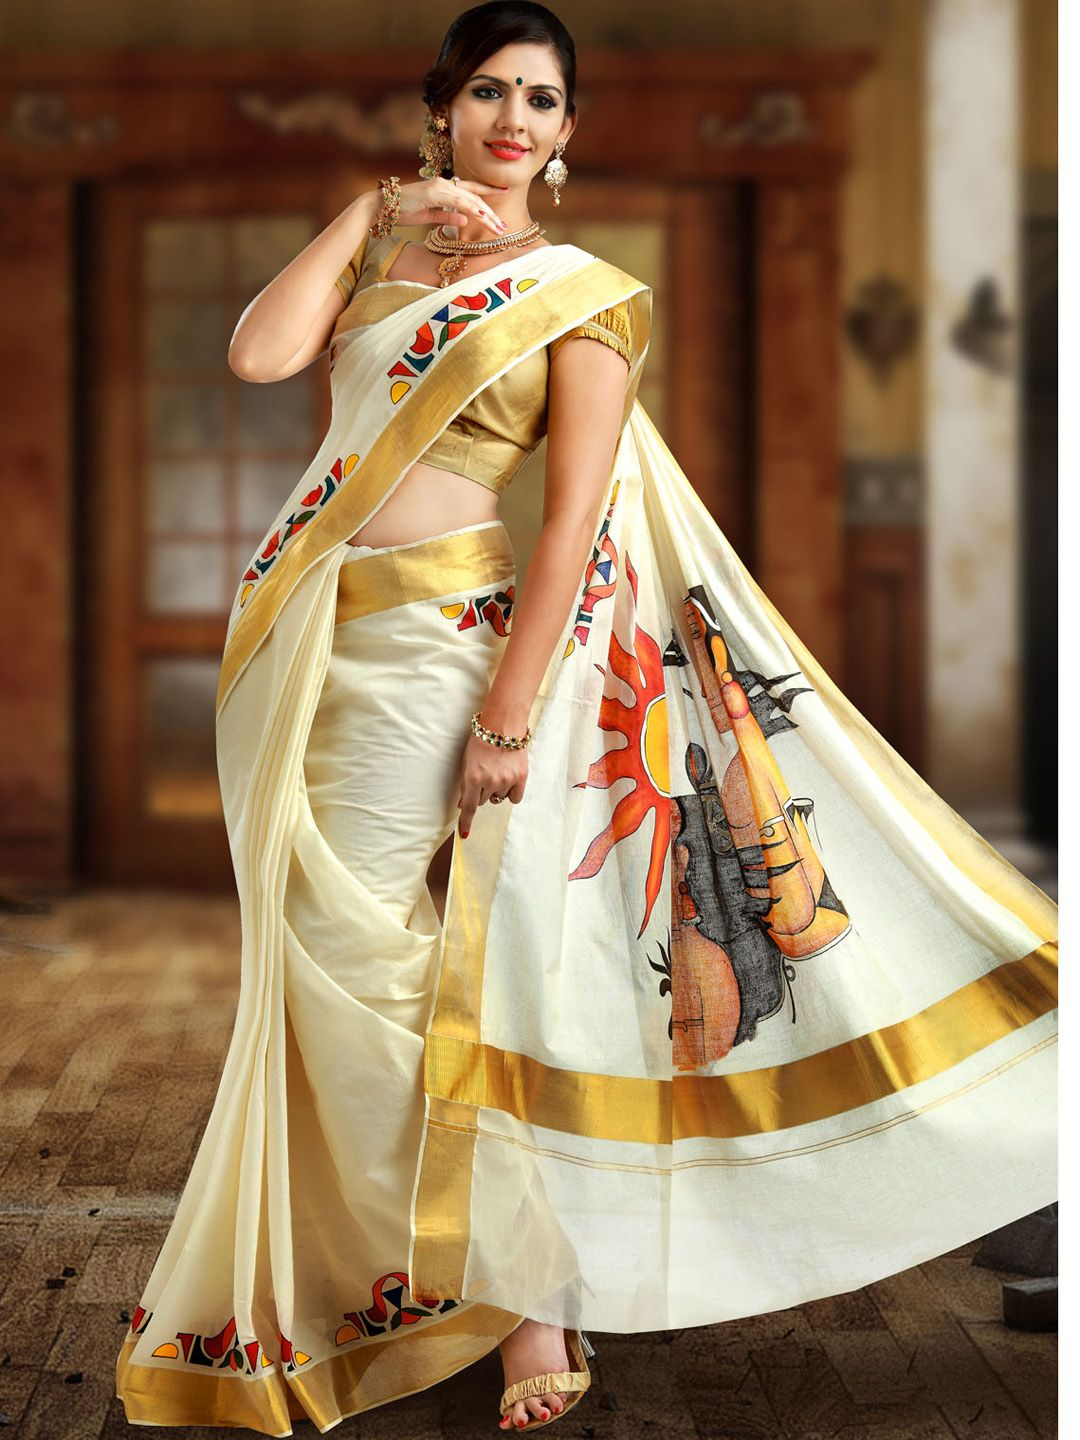 about kerala cast religon traditional dress in hindi Hindu customs and traditions form what the hindu culture as hinduism is the oldest religion on the earth they vary from region to region and caste to caste.